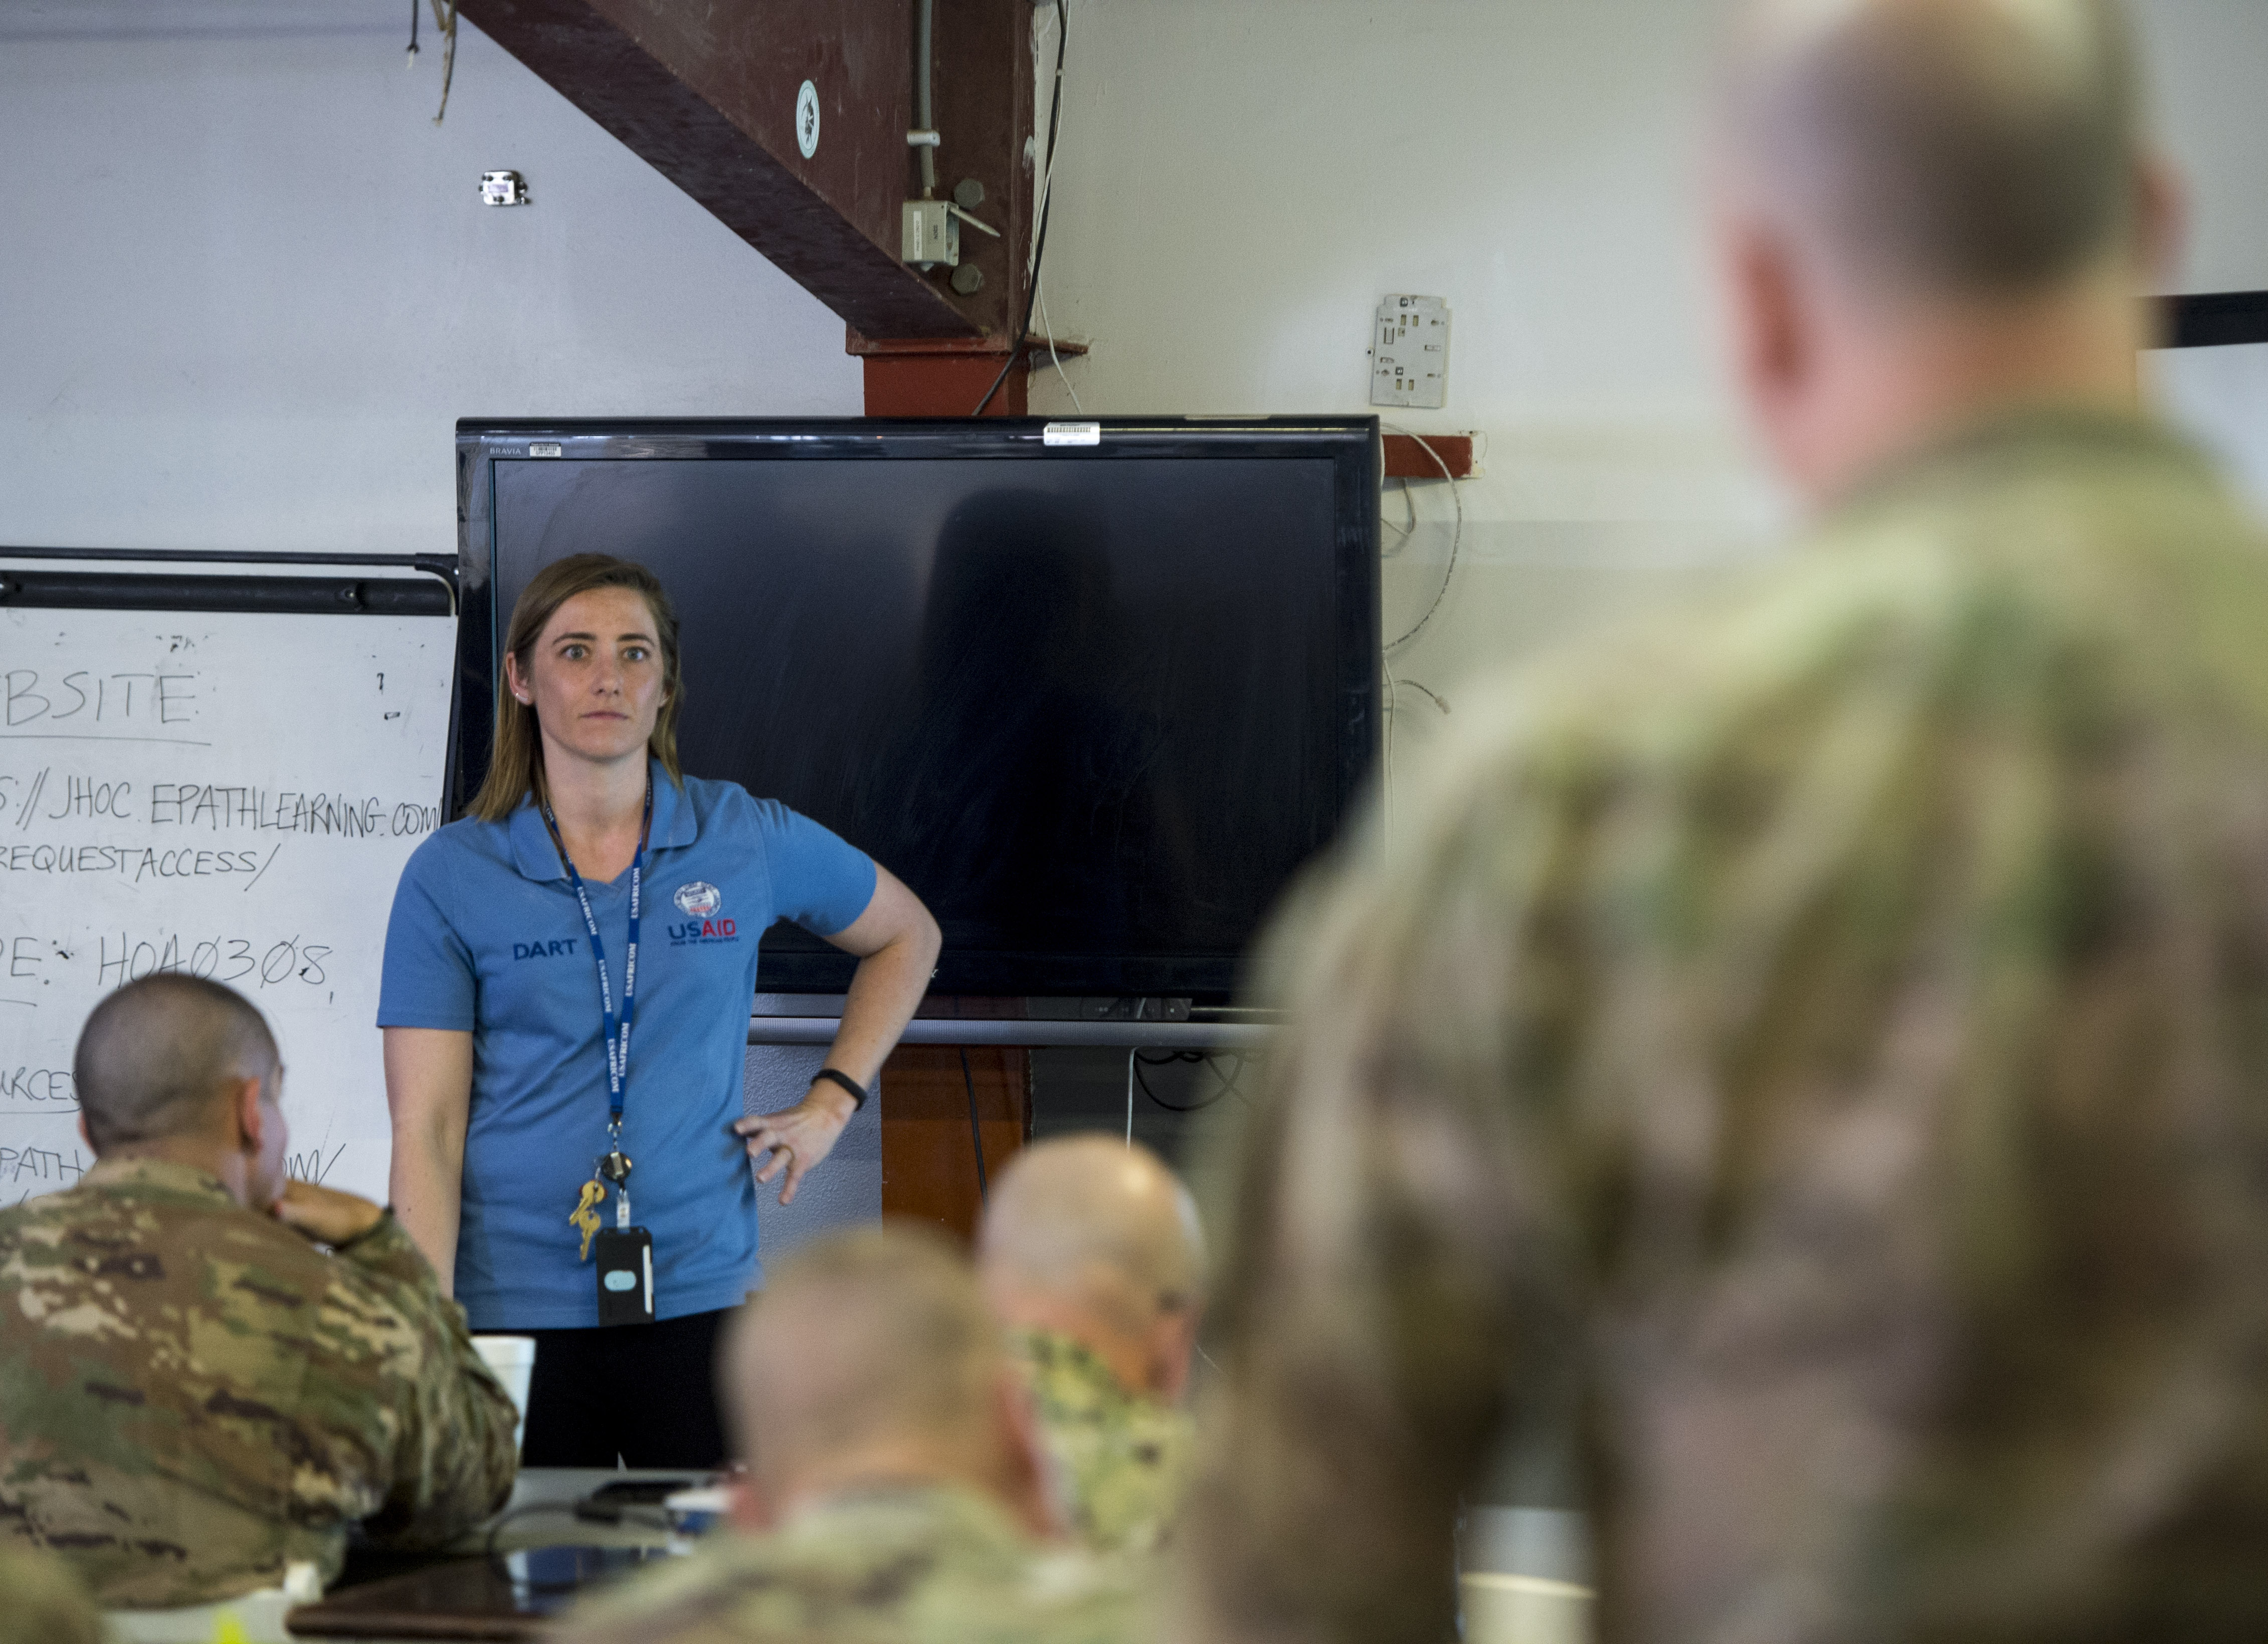 KJ Pettersen, an instructor with the U.S. Agency for International Development's Office of Foreign Disaster Assistance, listens as a service member assigned to Combined Joint Task Force - Horn of Africa briefs a plan for military involvement in a simulated disaster relief operation during a Joint Humanitarian Operations Course at Camp Lemonnier, Djibouti, March 9, 2018. Members attended the second two-day course, which highlighted international disaster response, best practices, and the U.S. military's role when supporting humanitarian assistance and disaster relief operations. (U.S. Air Force photo by Staff Sgt. Timothy Moore)